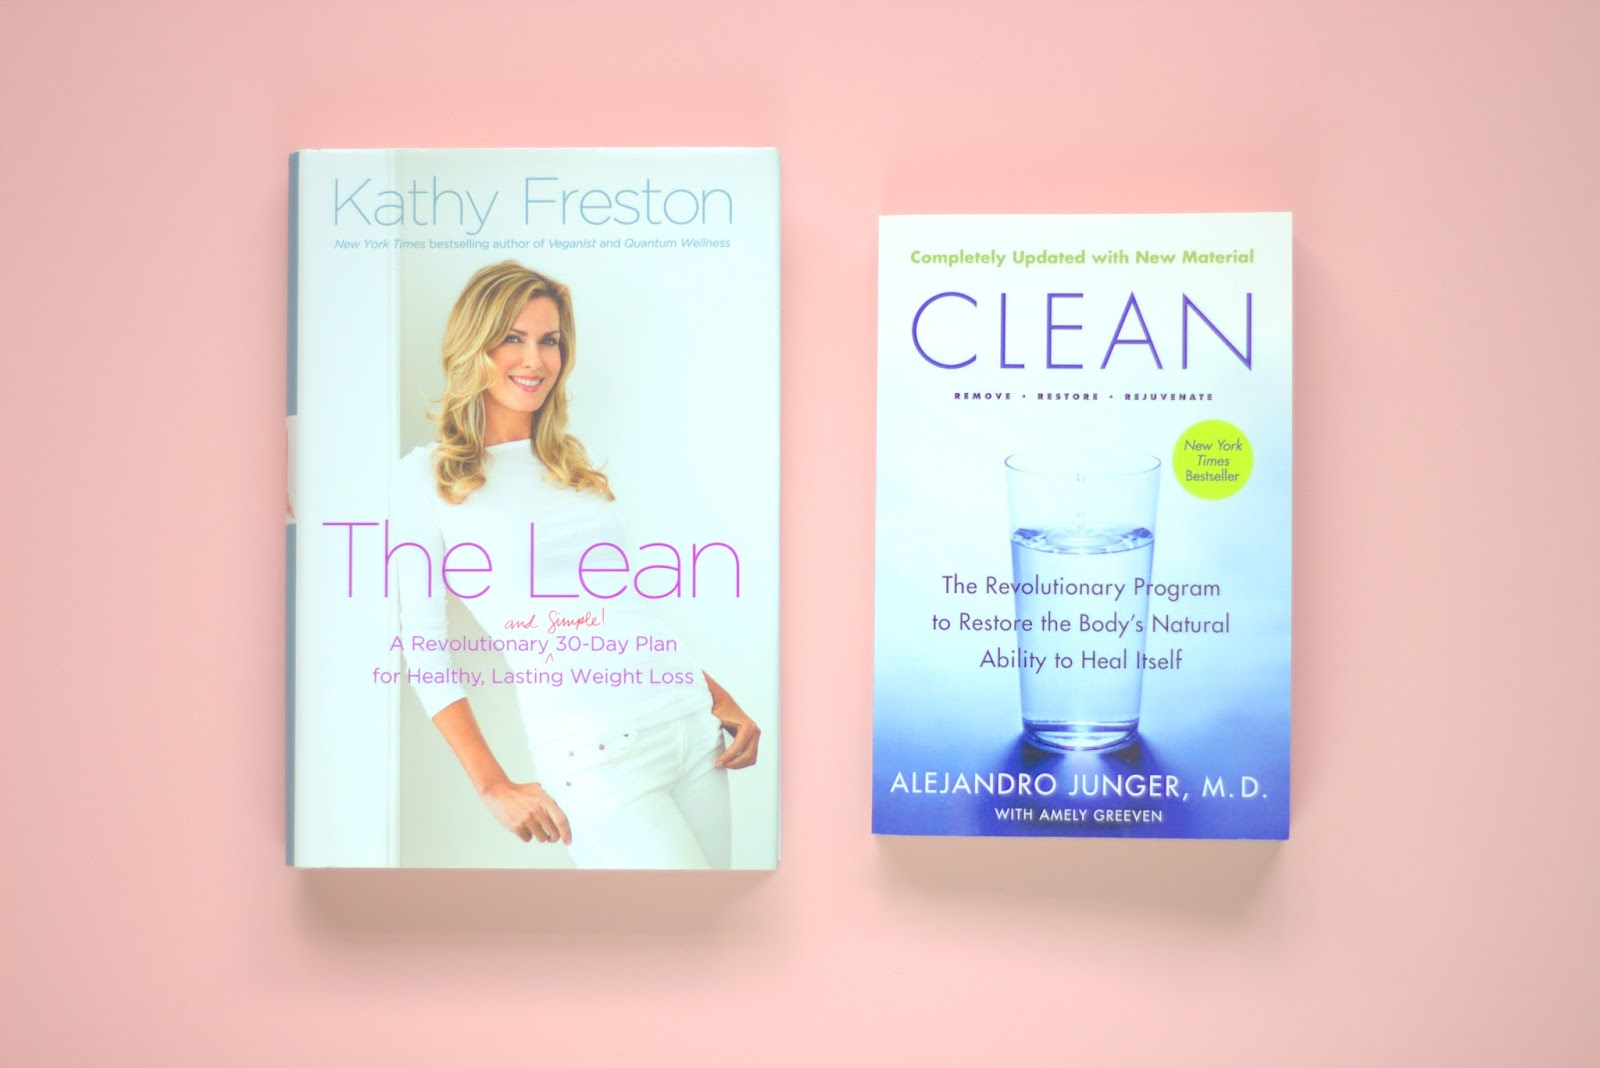 The Lean - books about plant based diets and natural living